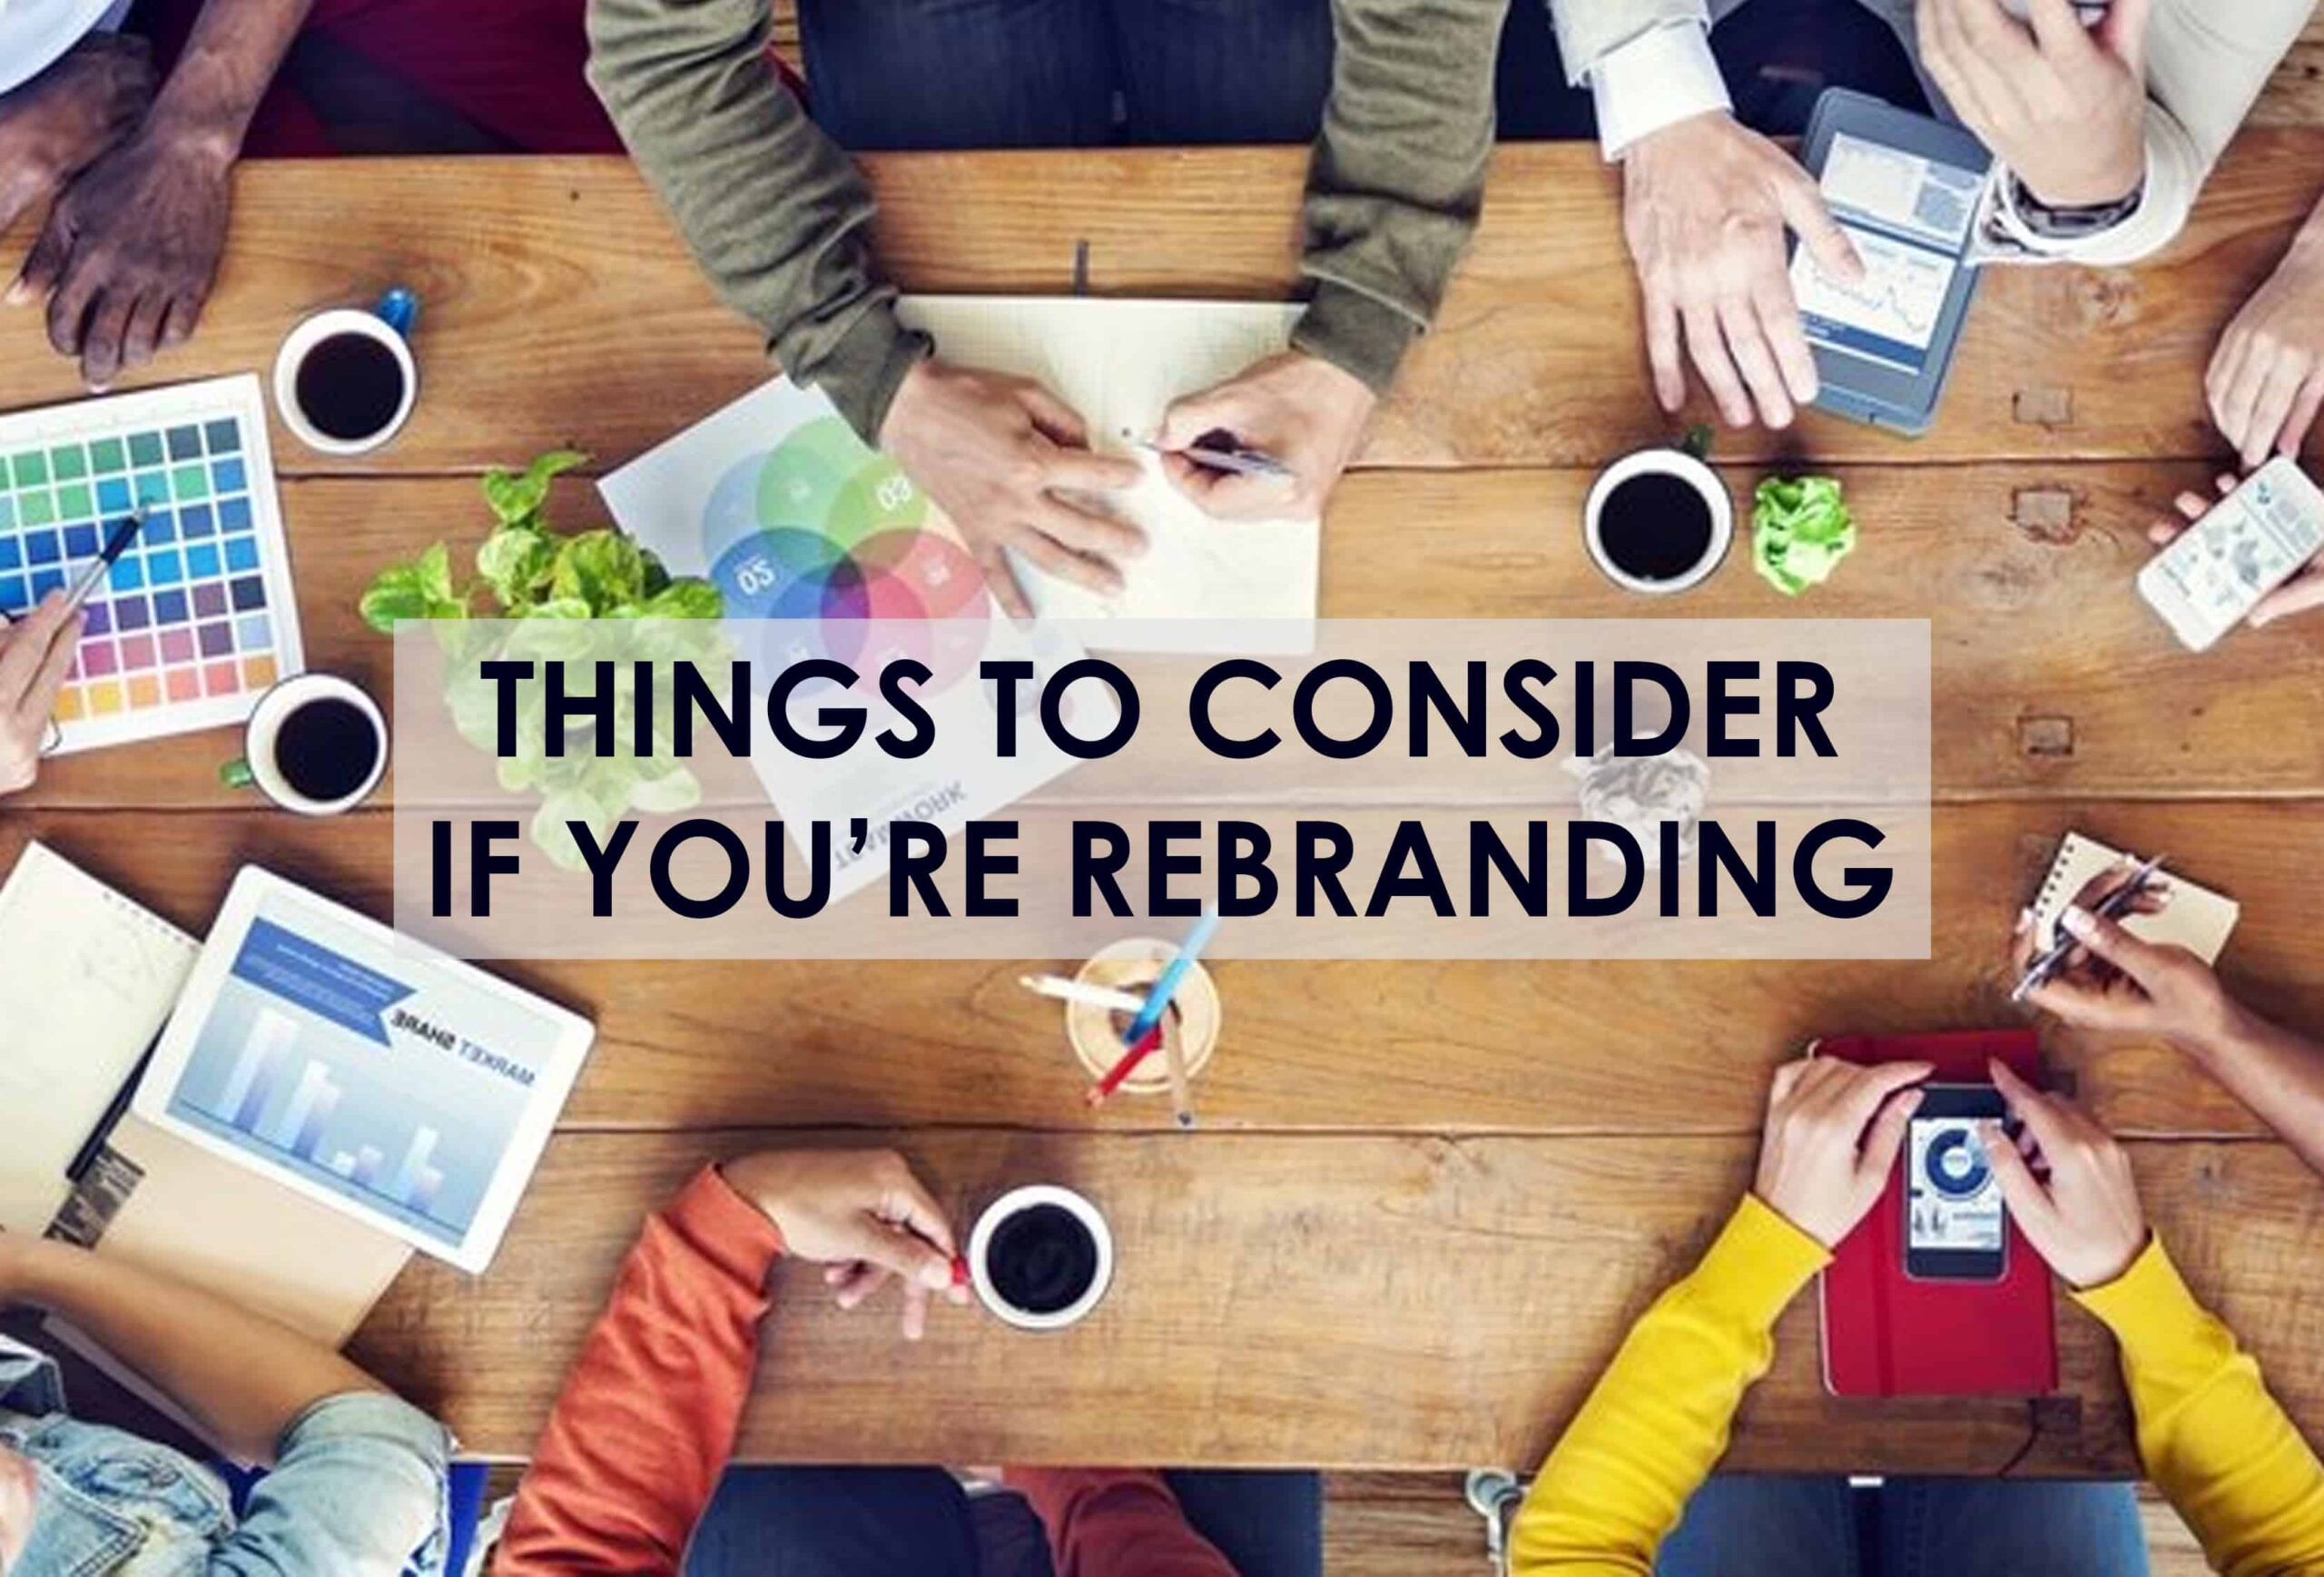 things To Consider If You're Rebranding